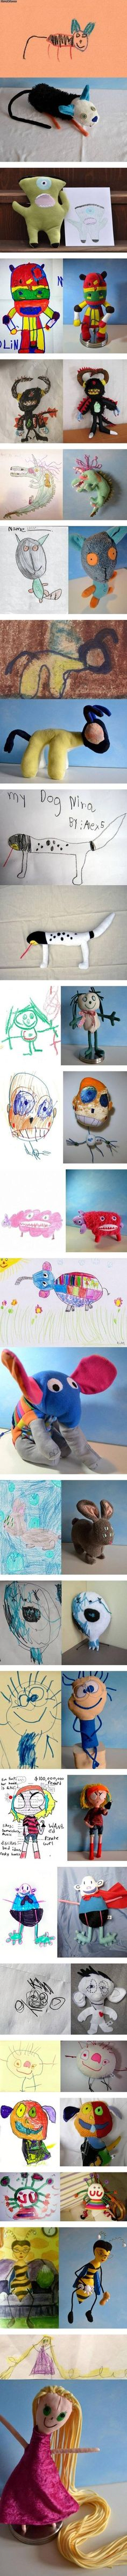 Toy company Child's Own turns kids' drawings into real life plush toys.